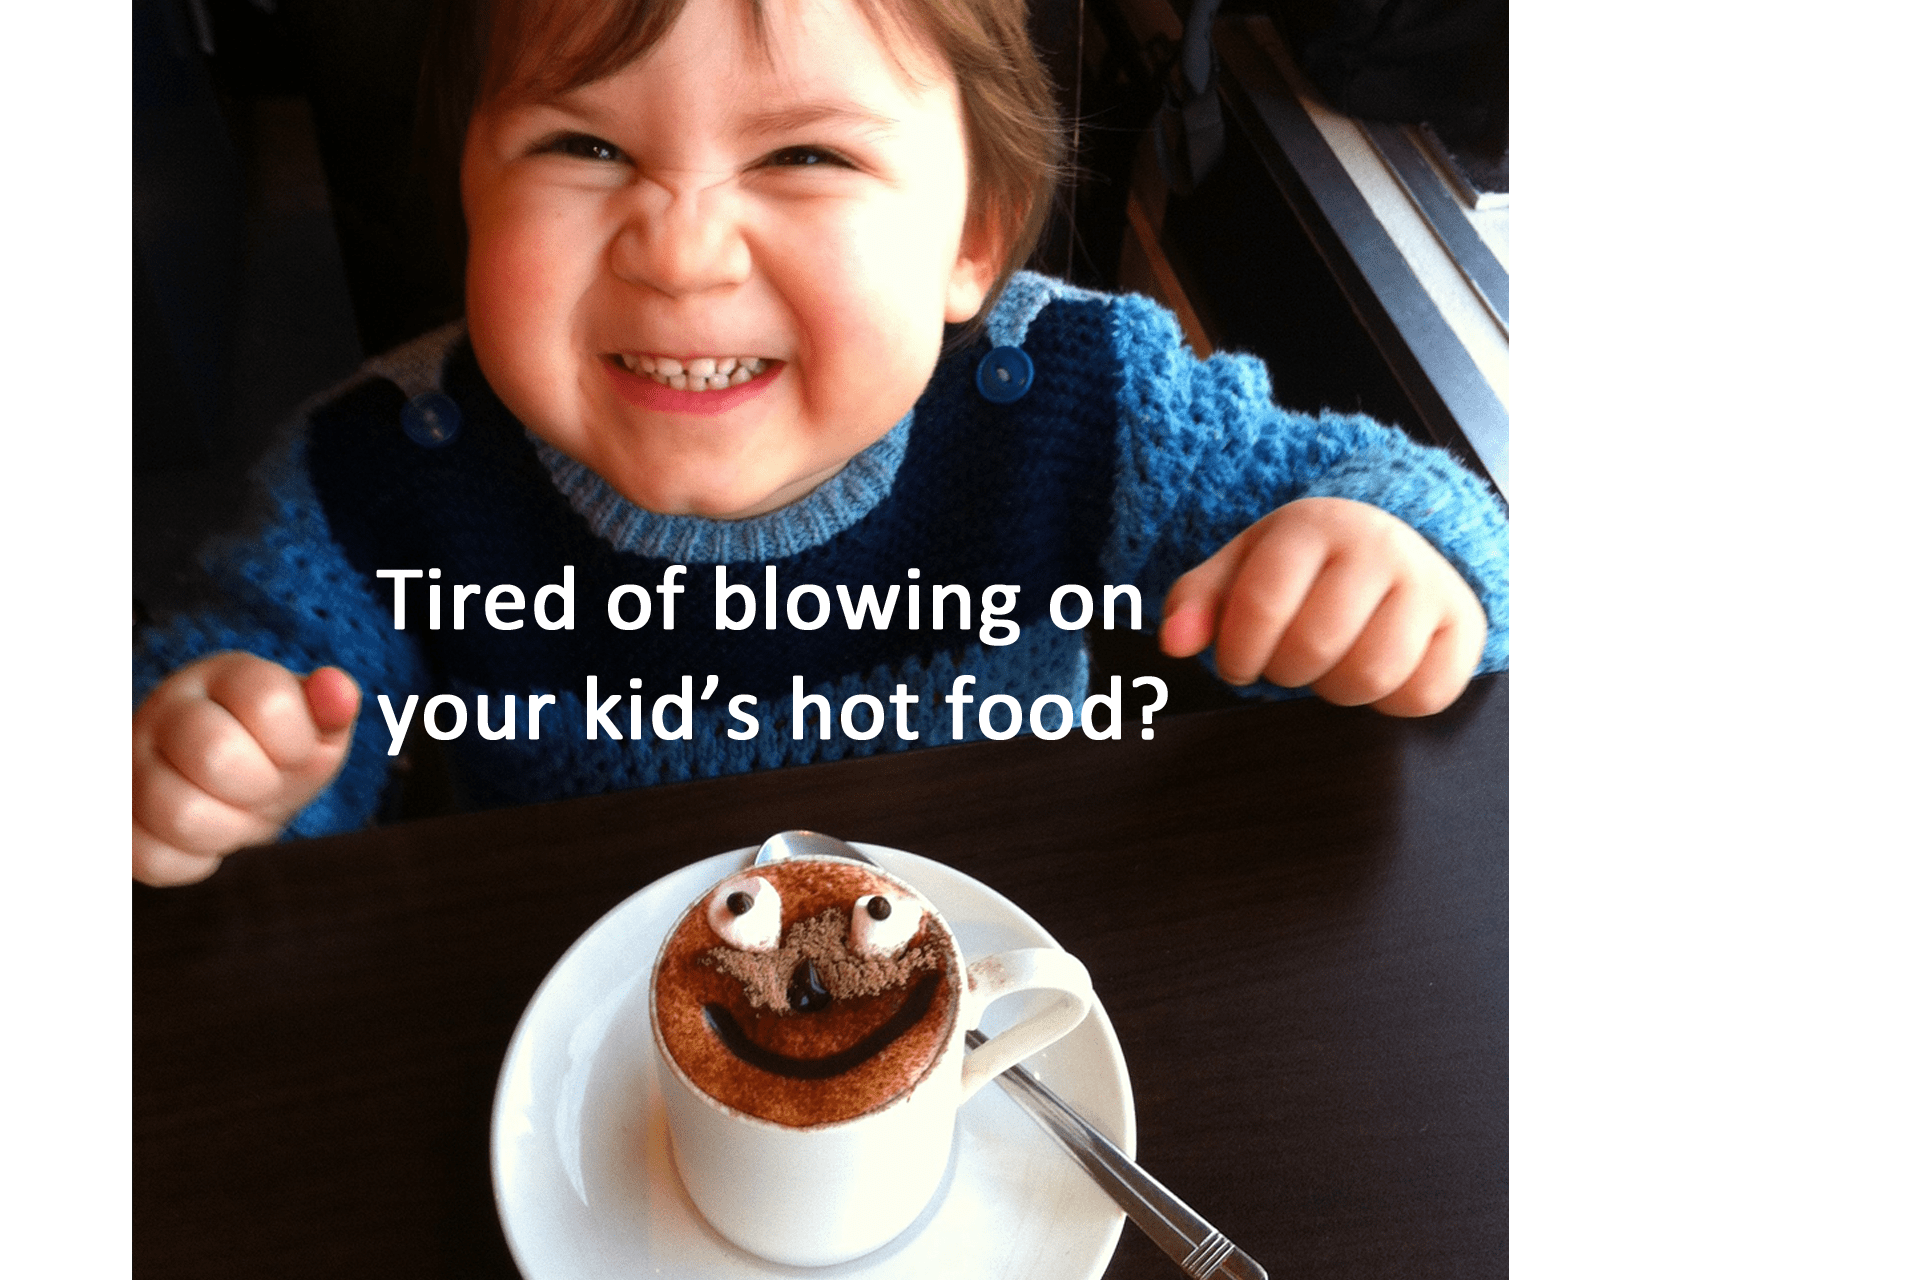 Parenting hack: How to teach your kid how to handle a plate of hot food